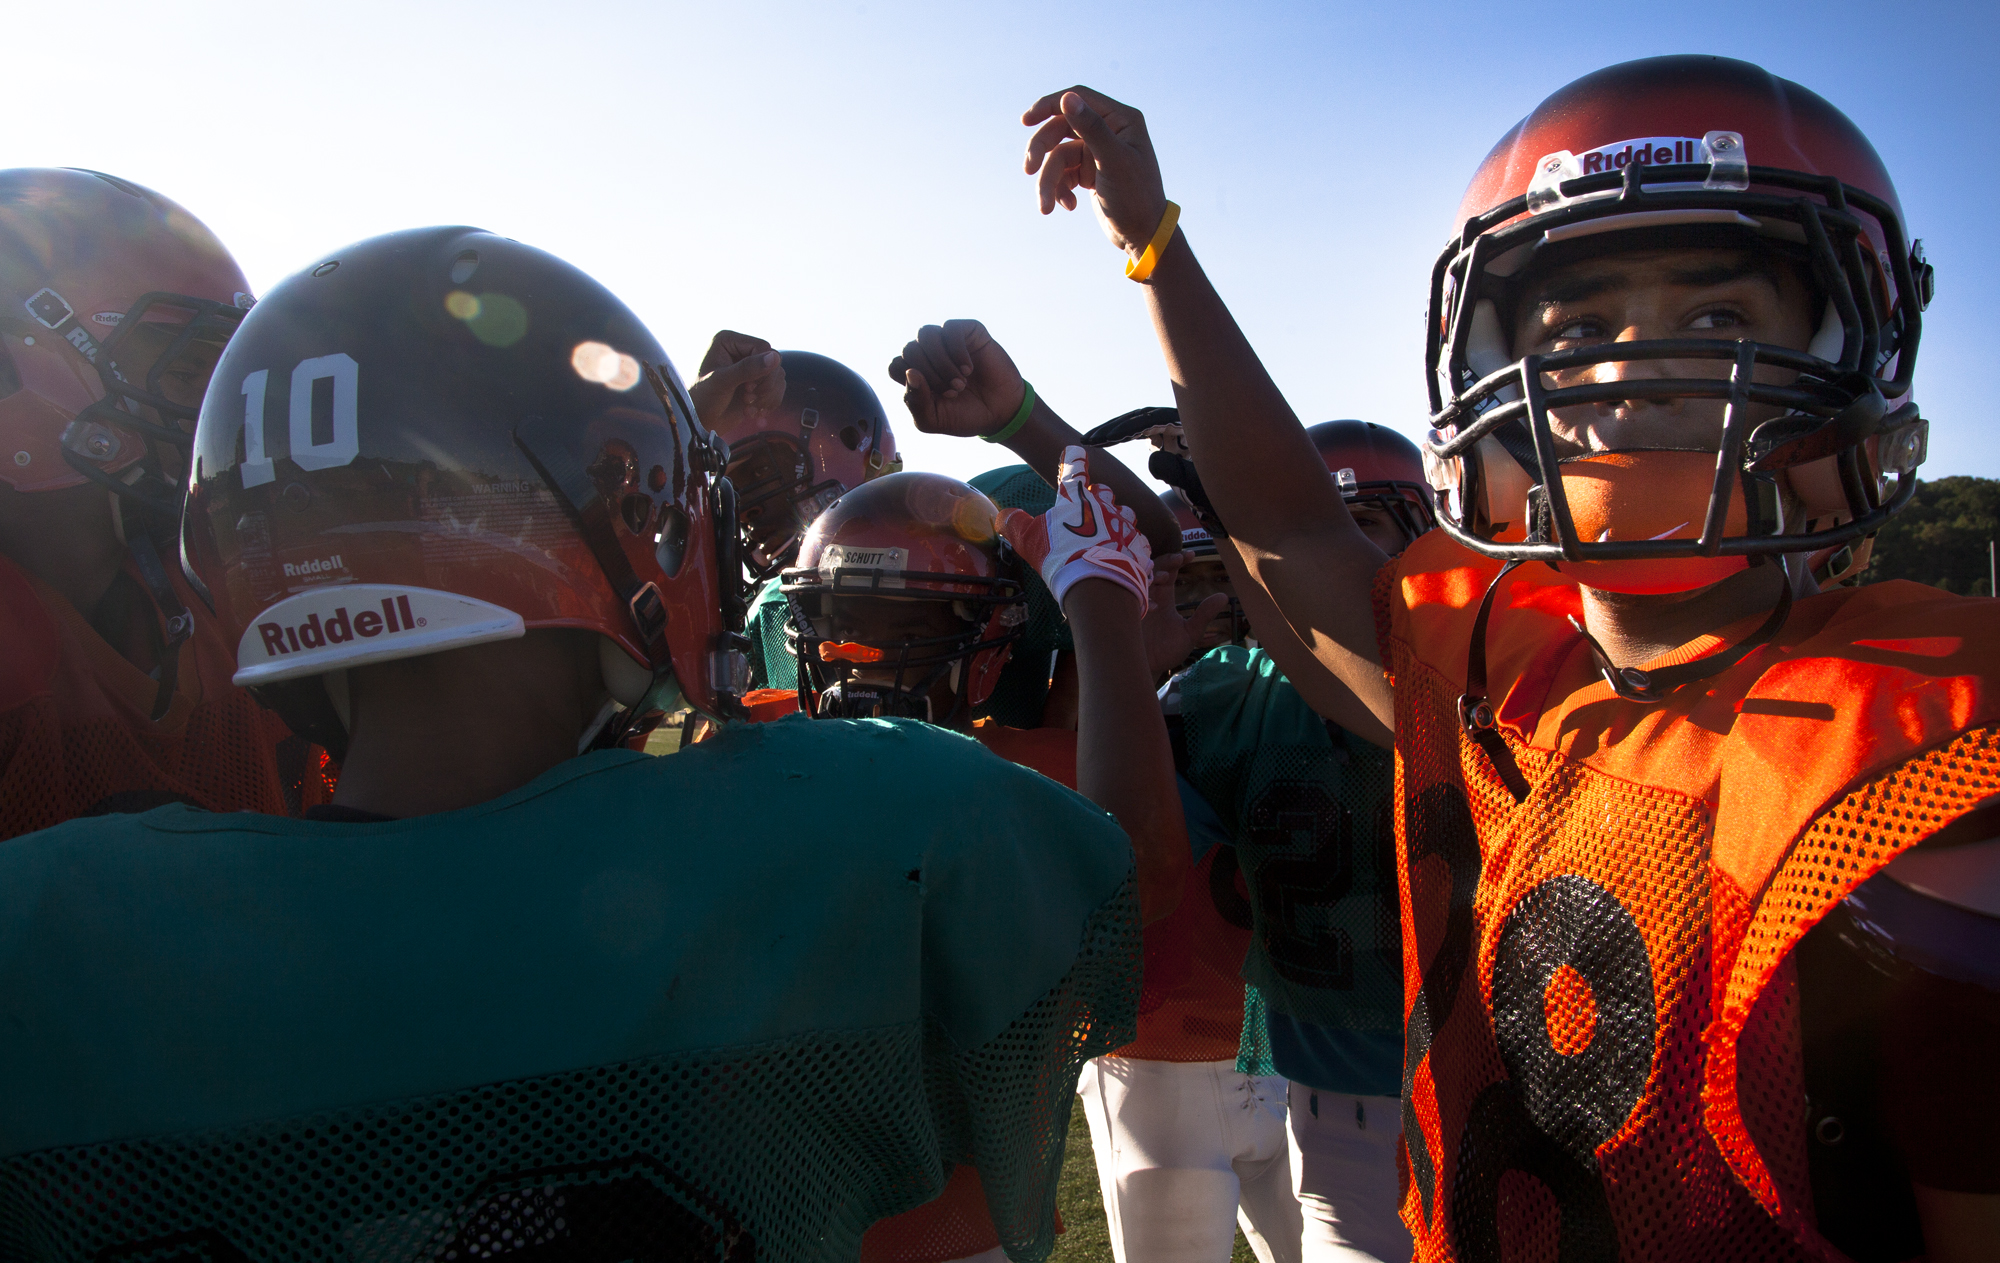 Myles Thomas, right, a senior with Central York High School gathers with his teammates on the football field during practice, Wednesday, Aug. 14, 2013. DAILY RECORD / SUNDAY NEWS - SONYA PACLOB